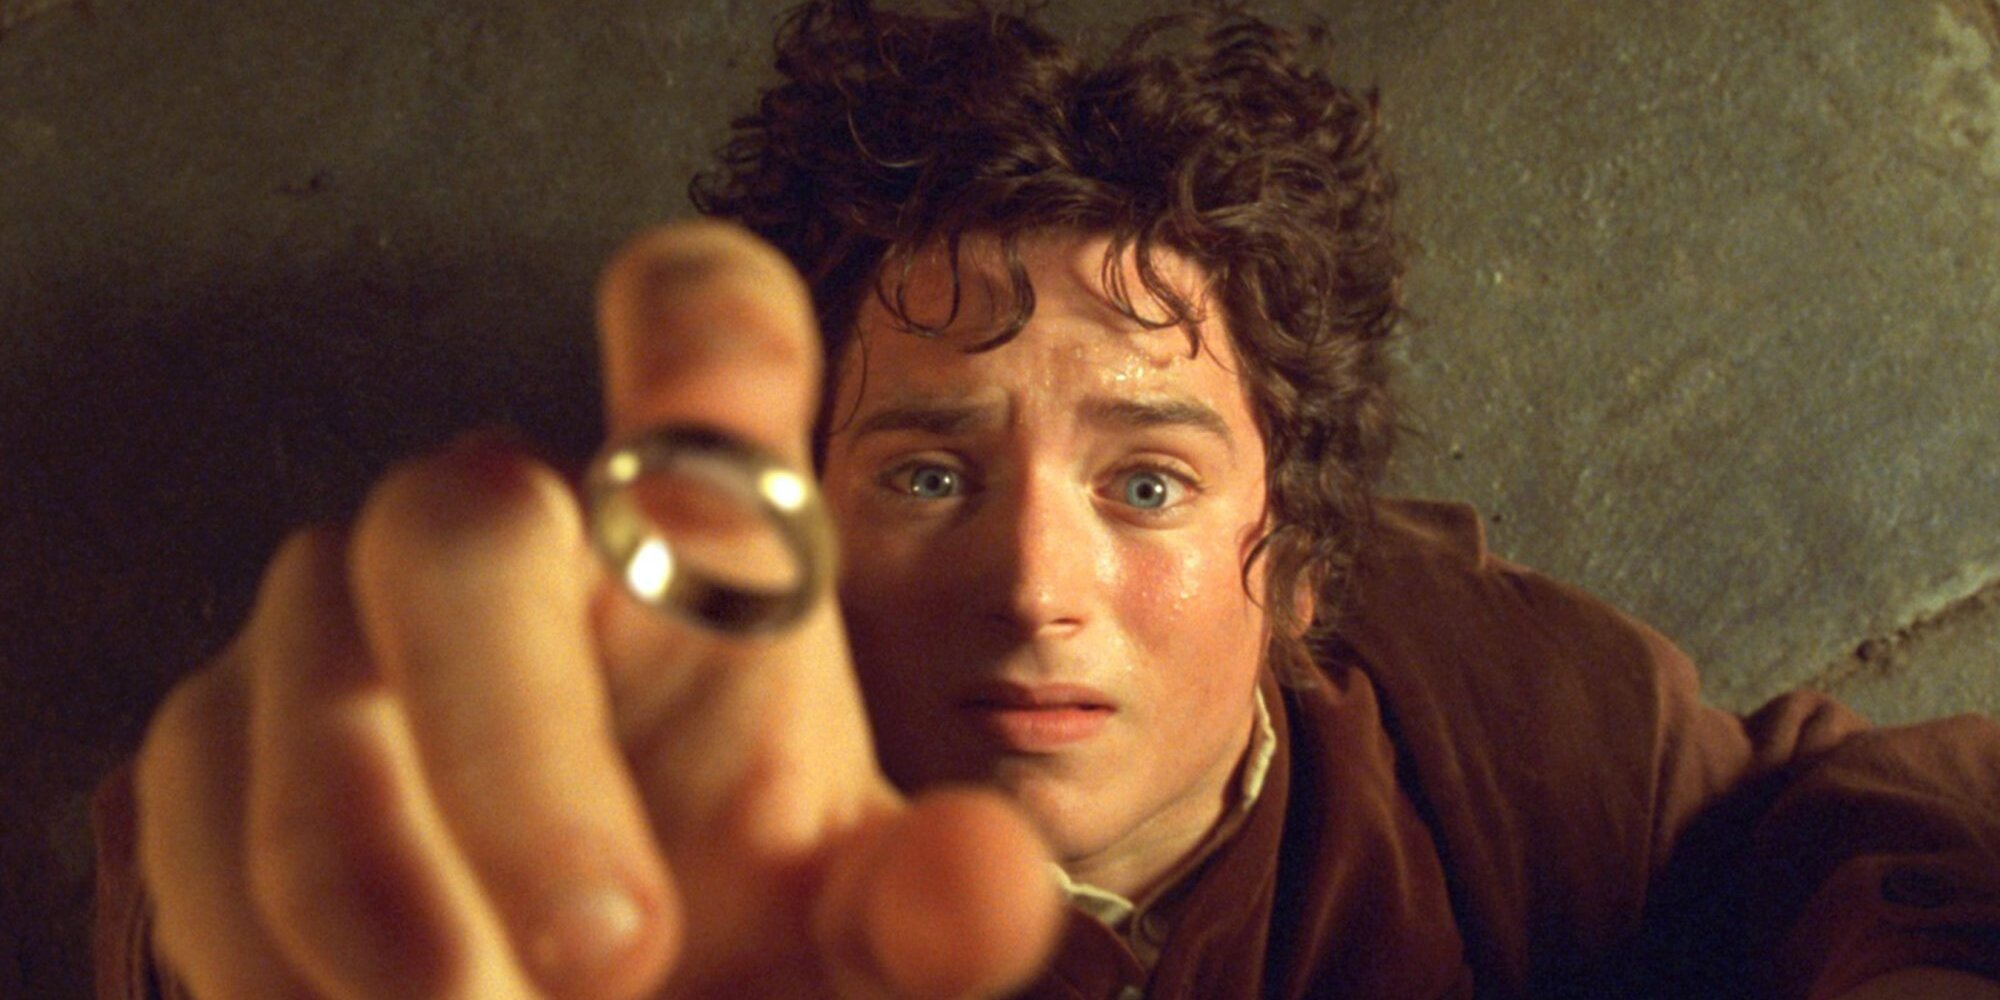 Amazon is spending upwards of $464 million on just season 1 of Lord of the Rings TV show.jpg